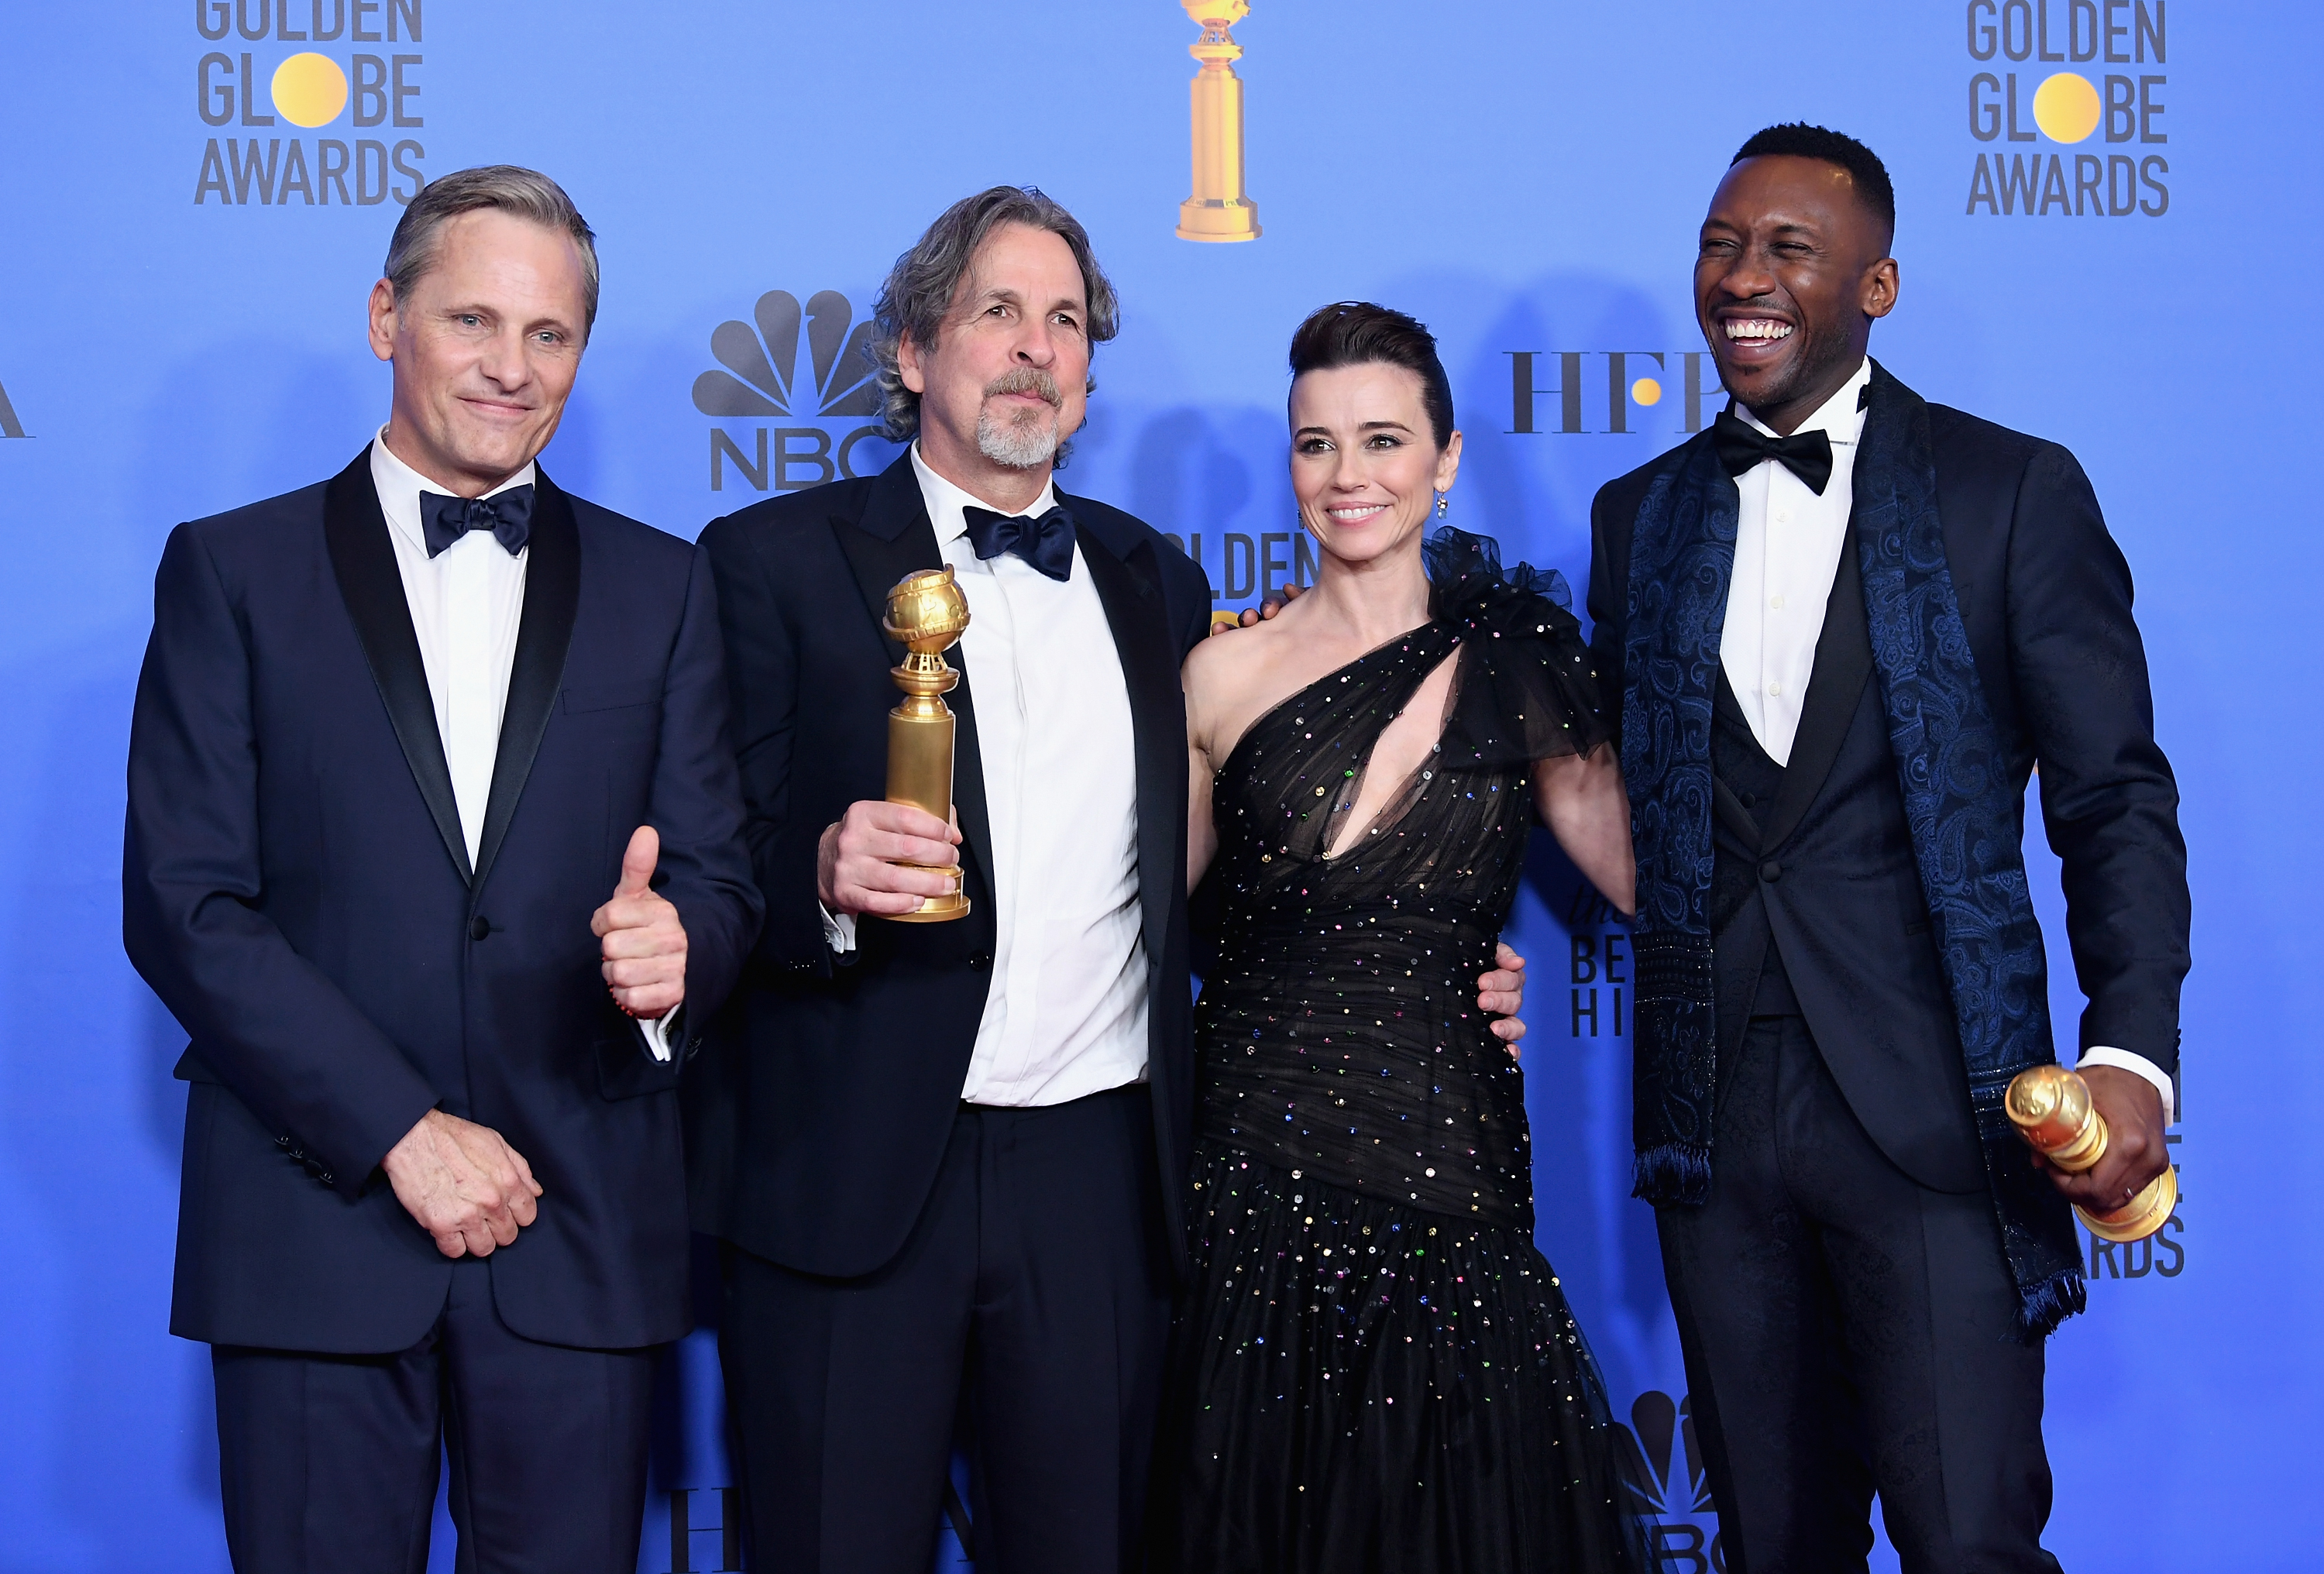 From left, Viggo Mortensen, Peter Farrelly, Linda Cardellini, and Mahershala Ali pose in the press room during the 76th Annual Golden Globe Awards at The Beverly Hilton Hotel on January 6, 2019 in Beverly Hills, California.  (Photo by Kevin Winter/Getty Images)